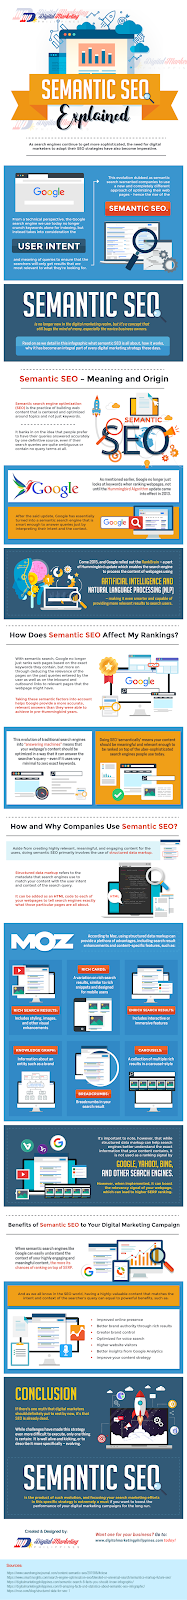 Semantic SEO Explain